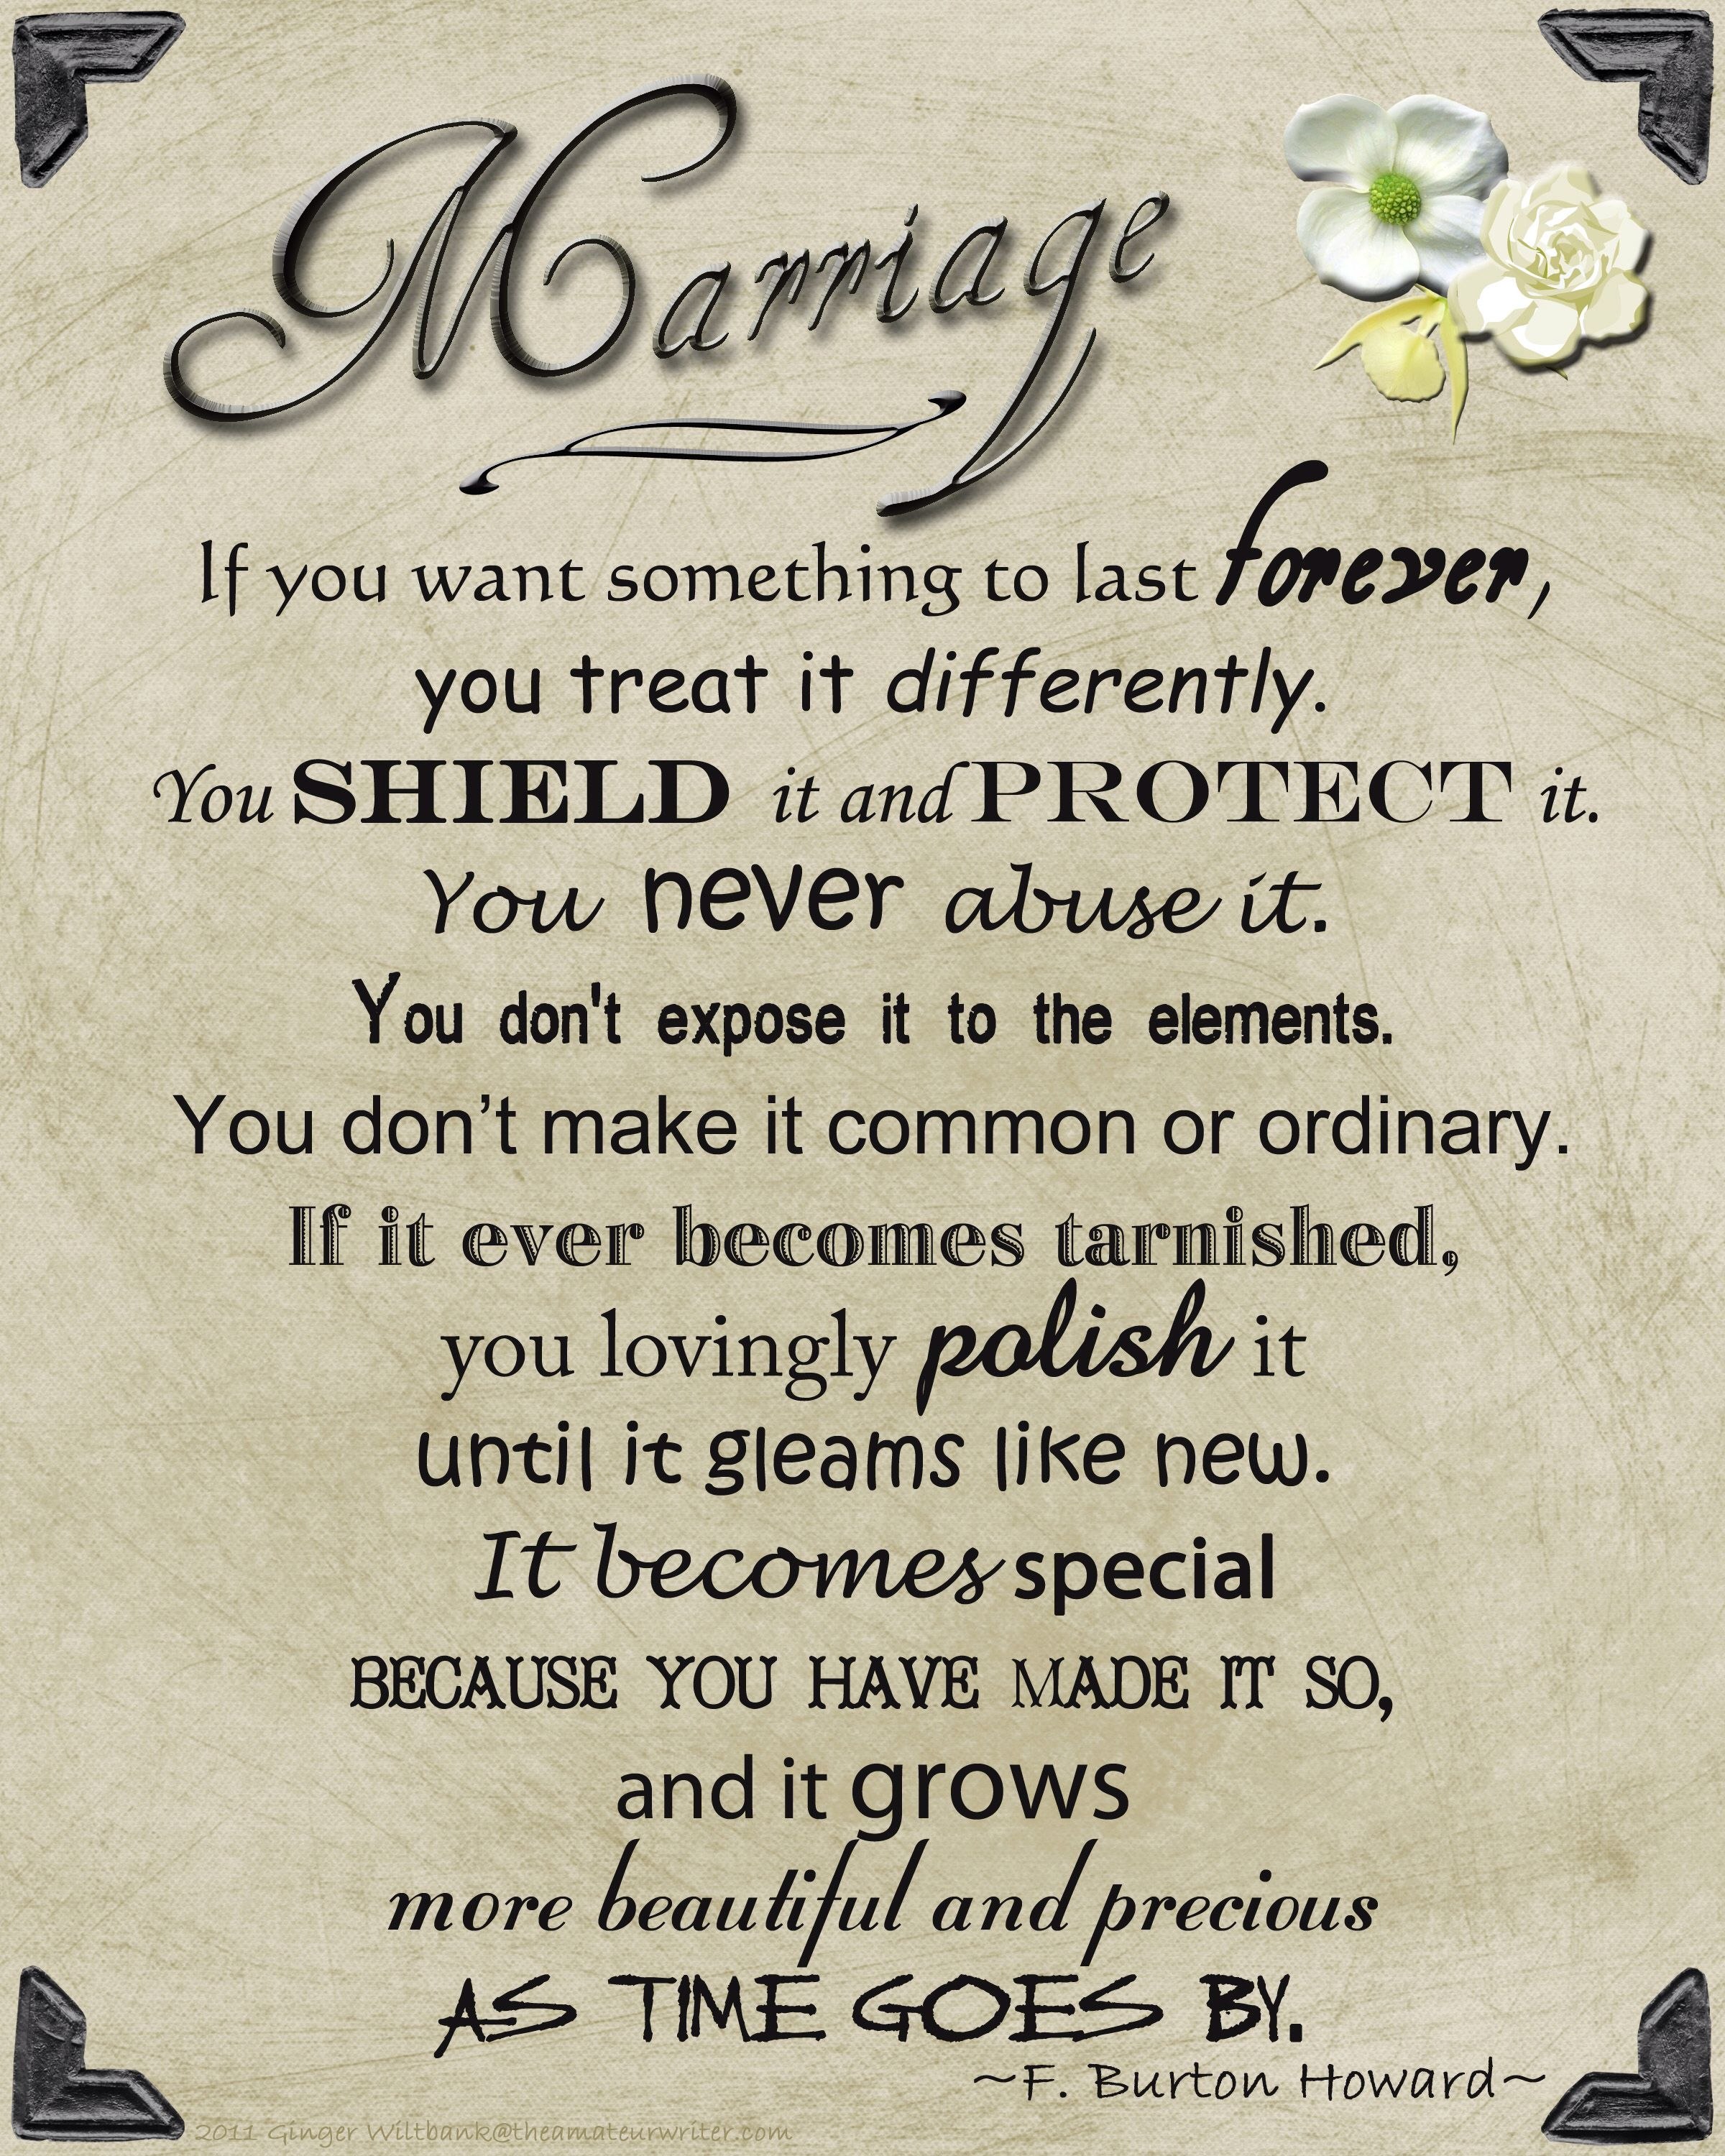 Marriage Poem For Legacy Table Where You Can Put Family Wedding Photos